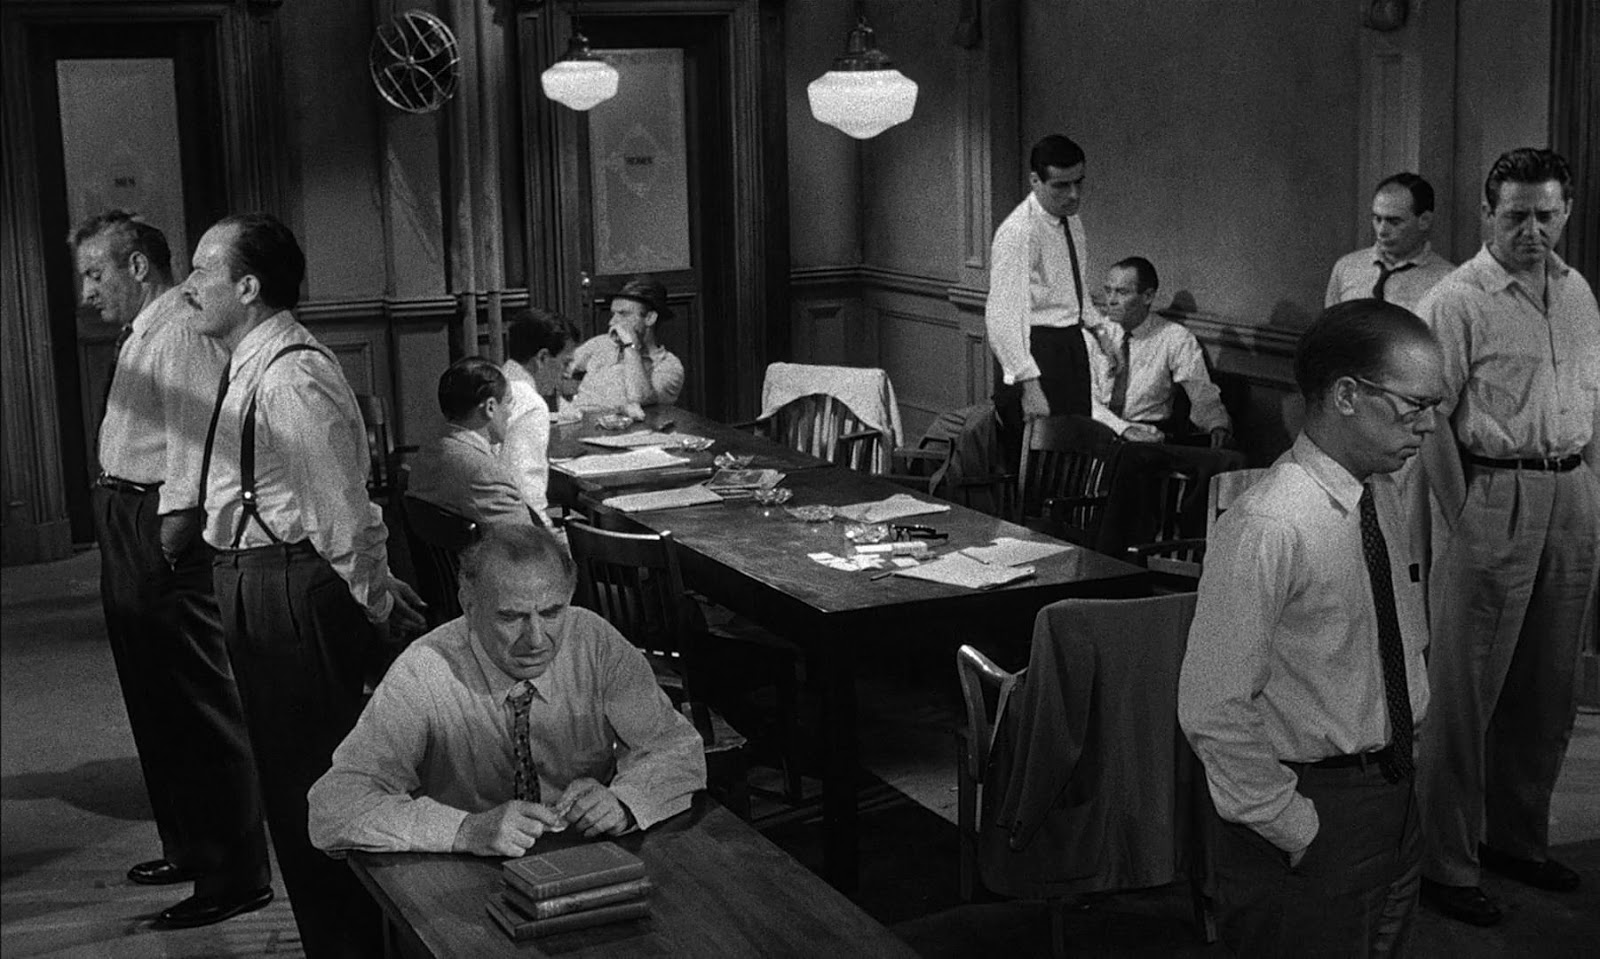 12 angry men 3 essay 12 angry men, a 1957 film directed by sidney lumet, based off of a teleplay by reginald rose, exemplifies various forms of human communication amongst a small group.